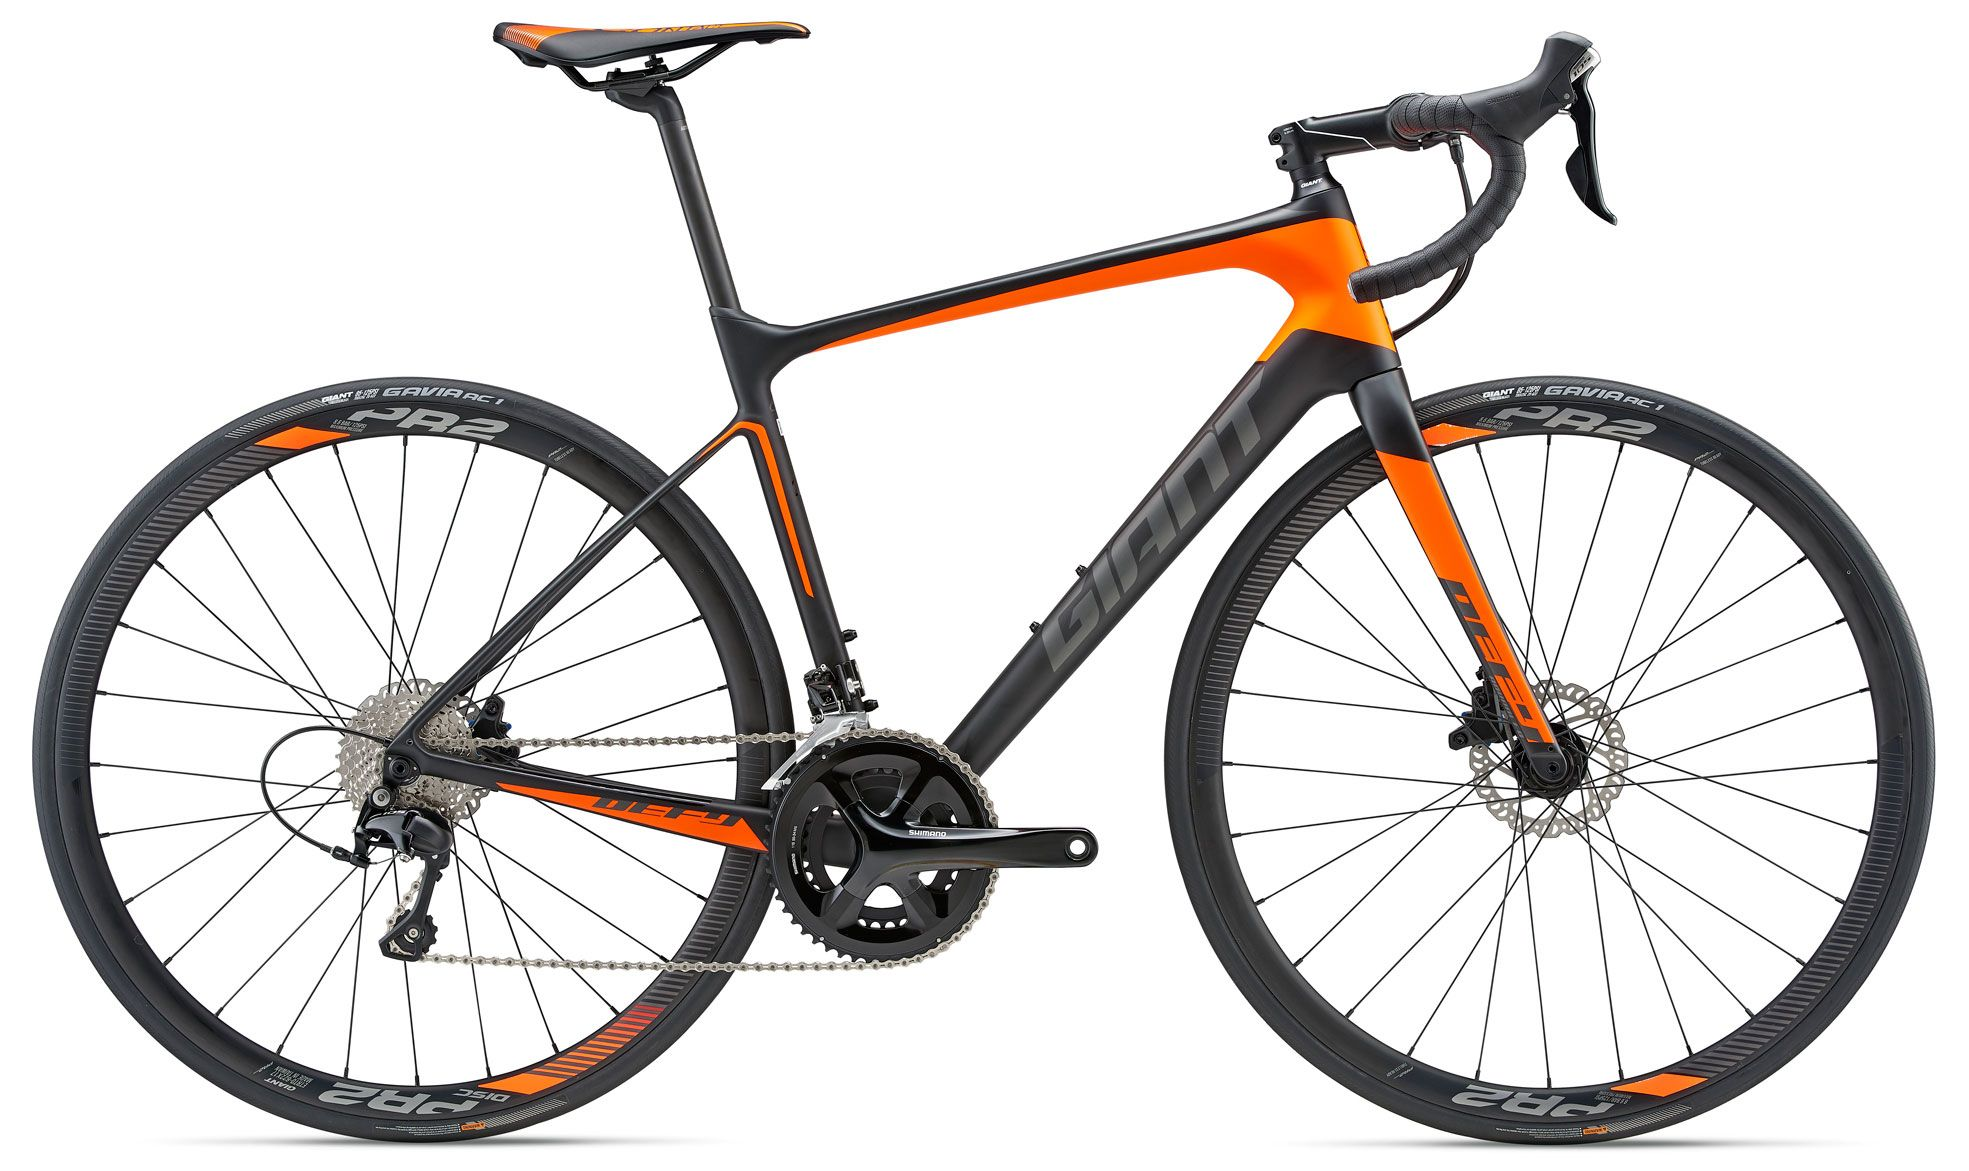 Велосипед Giant Defy Advanced 2 2018 велосипед giant xtc advanced 27 5 2 2014